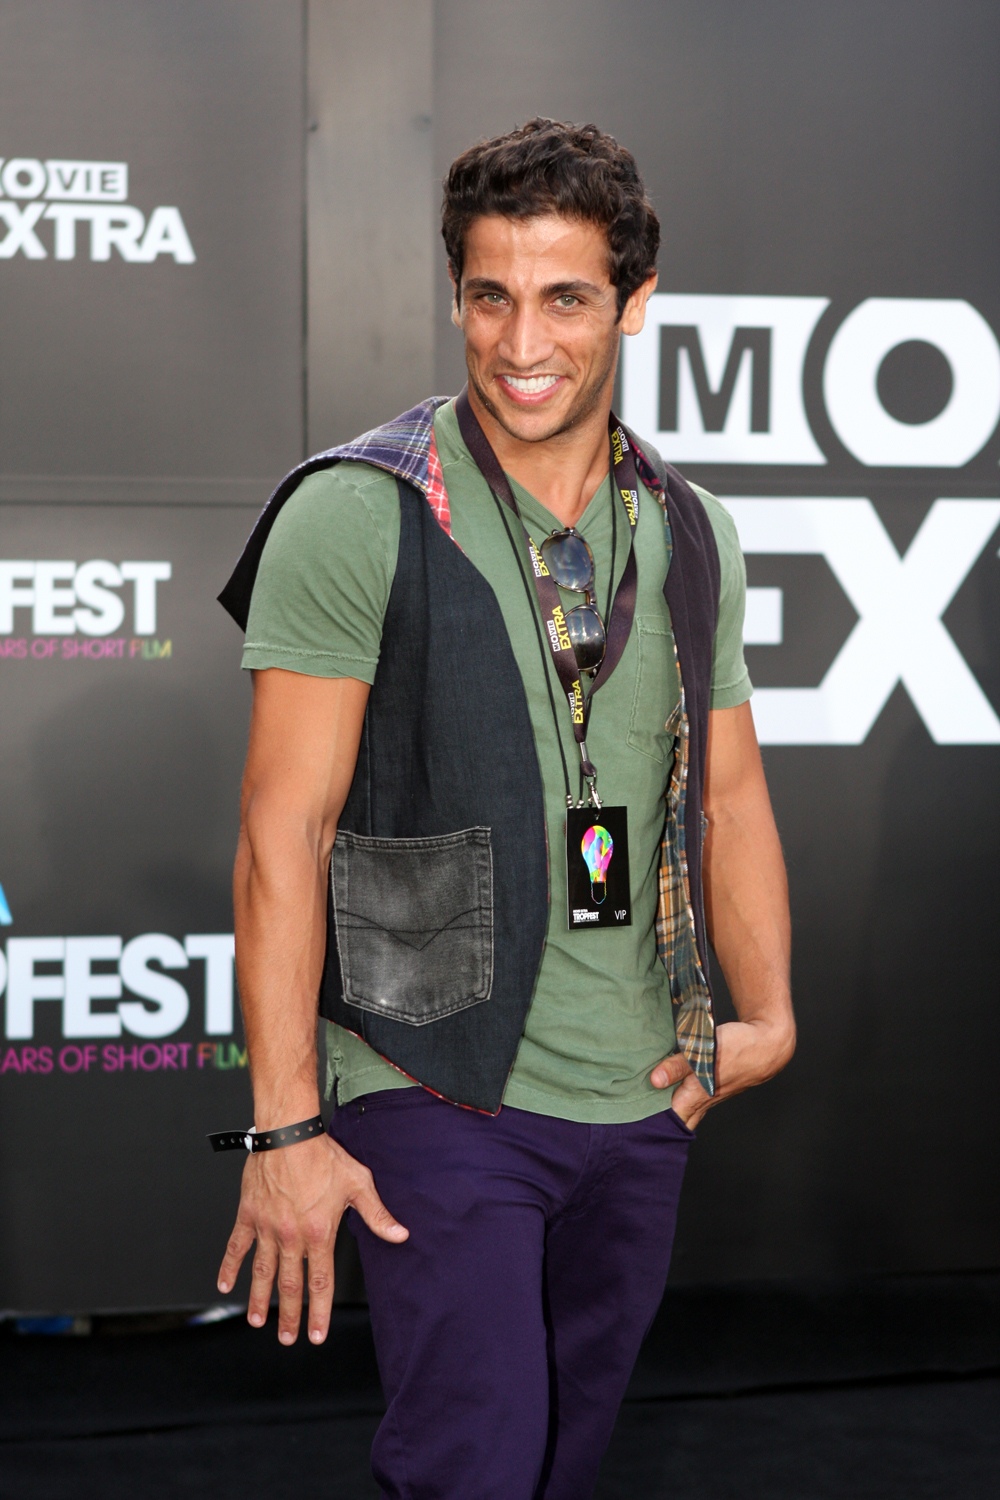 firass dirani muslimfirass dirani instagram, firass dirani height, firass dirani and girlfriend, firass dirani interview, firass dirani imdb, firass dirani and melanie vallejo married, firass dirani, firass dirani wife, firass dirani and melanie vallejo, firass dirani power ranger, firass dirani facebook, firass dirani wiki, фирасс дирани википедия, firass dirani married, firass dirani net worth, firass dirani shirtless, firass dirani religion, firass dirani biography, firass dirani muslim, firass dirani background